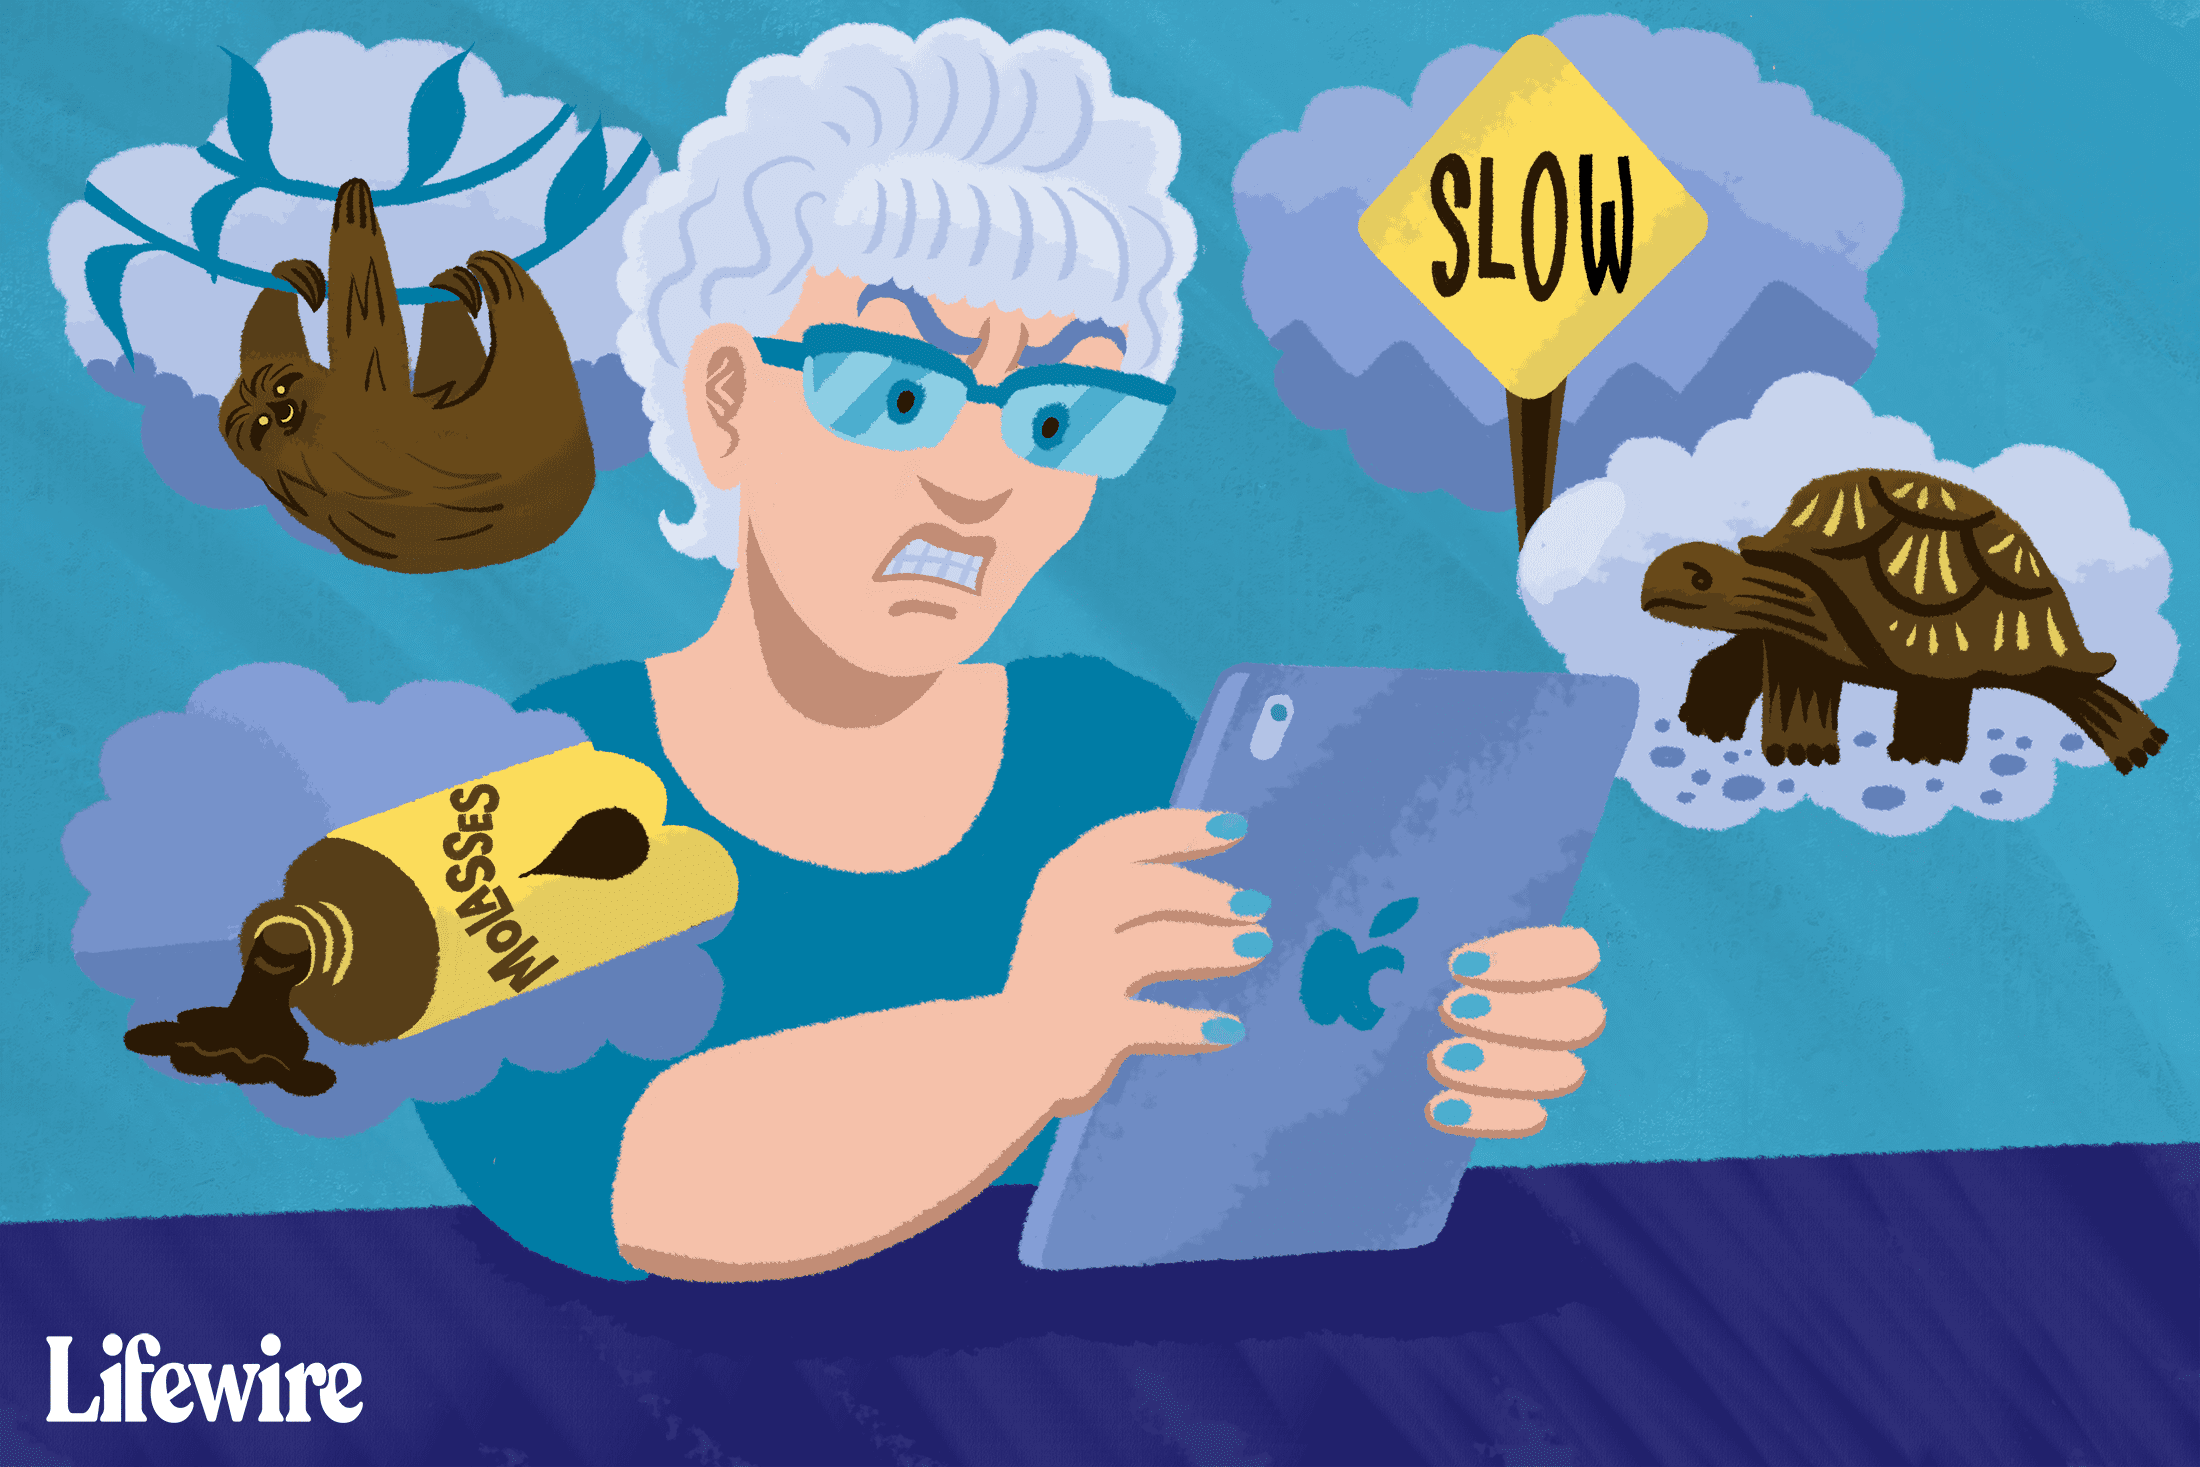 Someone frustrated with their slow iPad, surrounded by pictures of turtles, sloth, molasses, and Slow signs